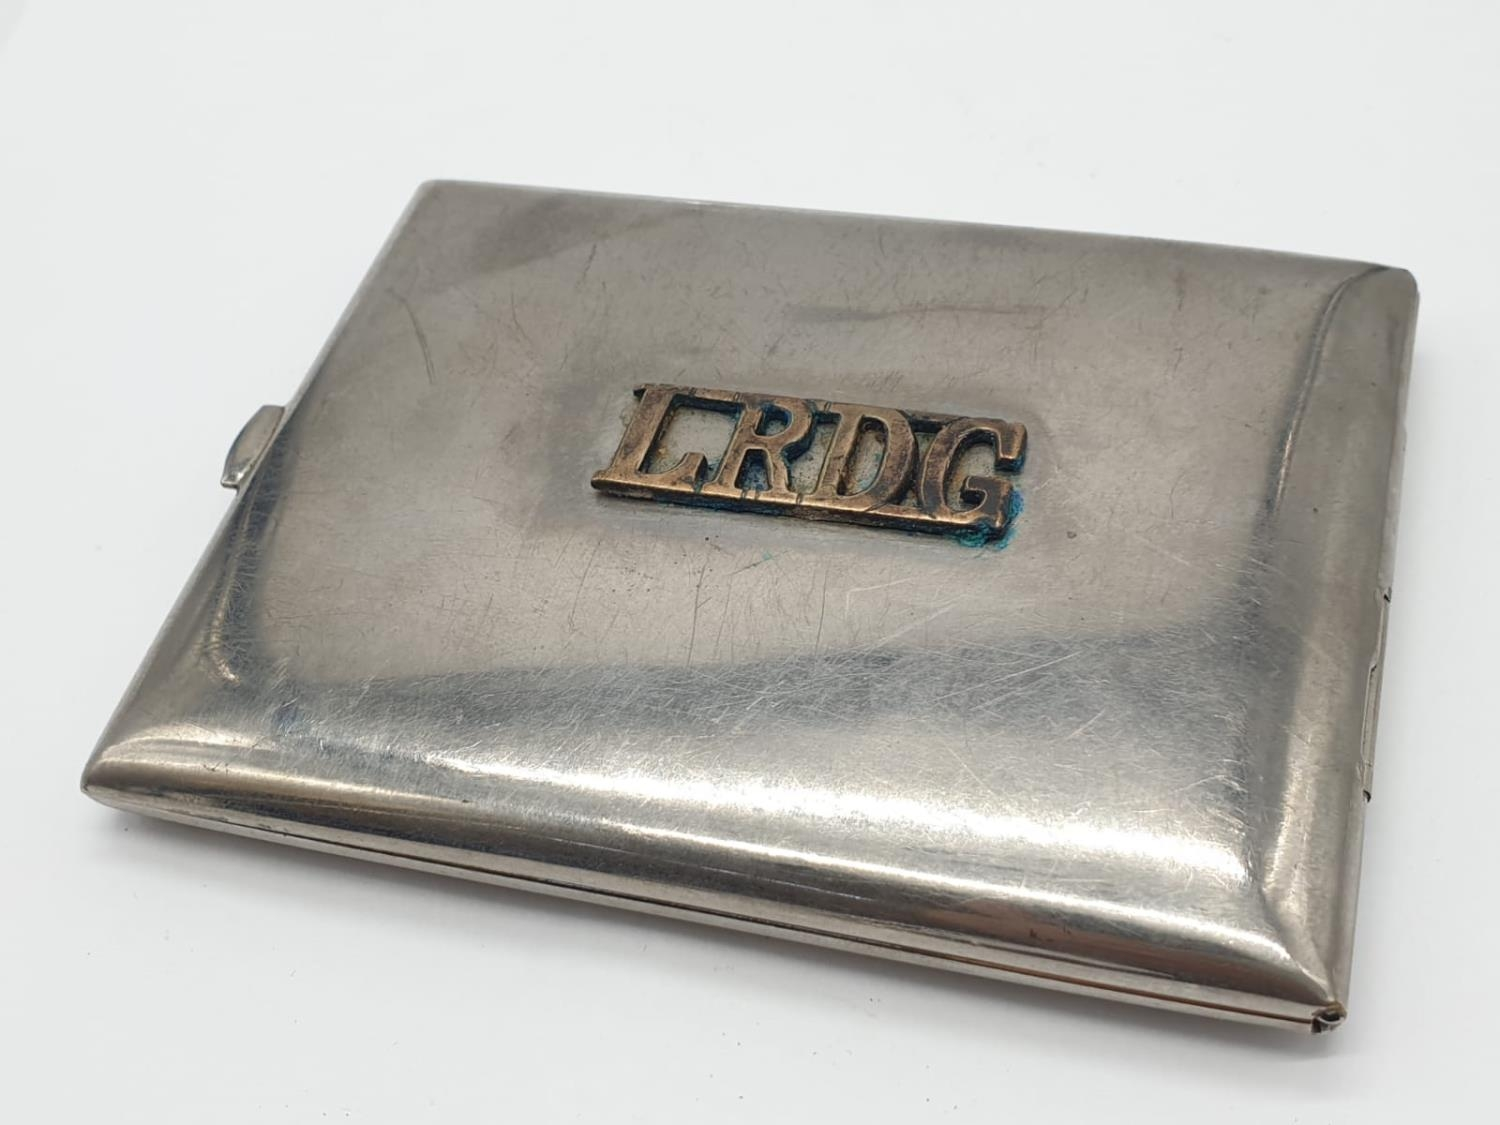 WW2 Period Cigarette Case. Hand engraved ?Egypt? and a Long Range Desert Group shoulder title